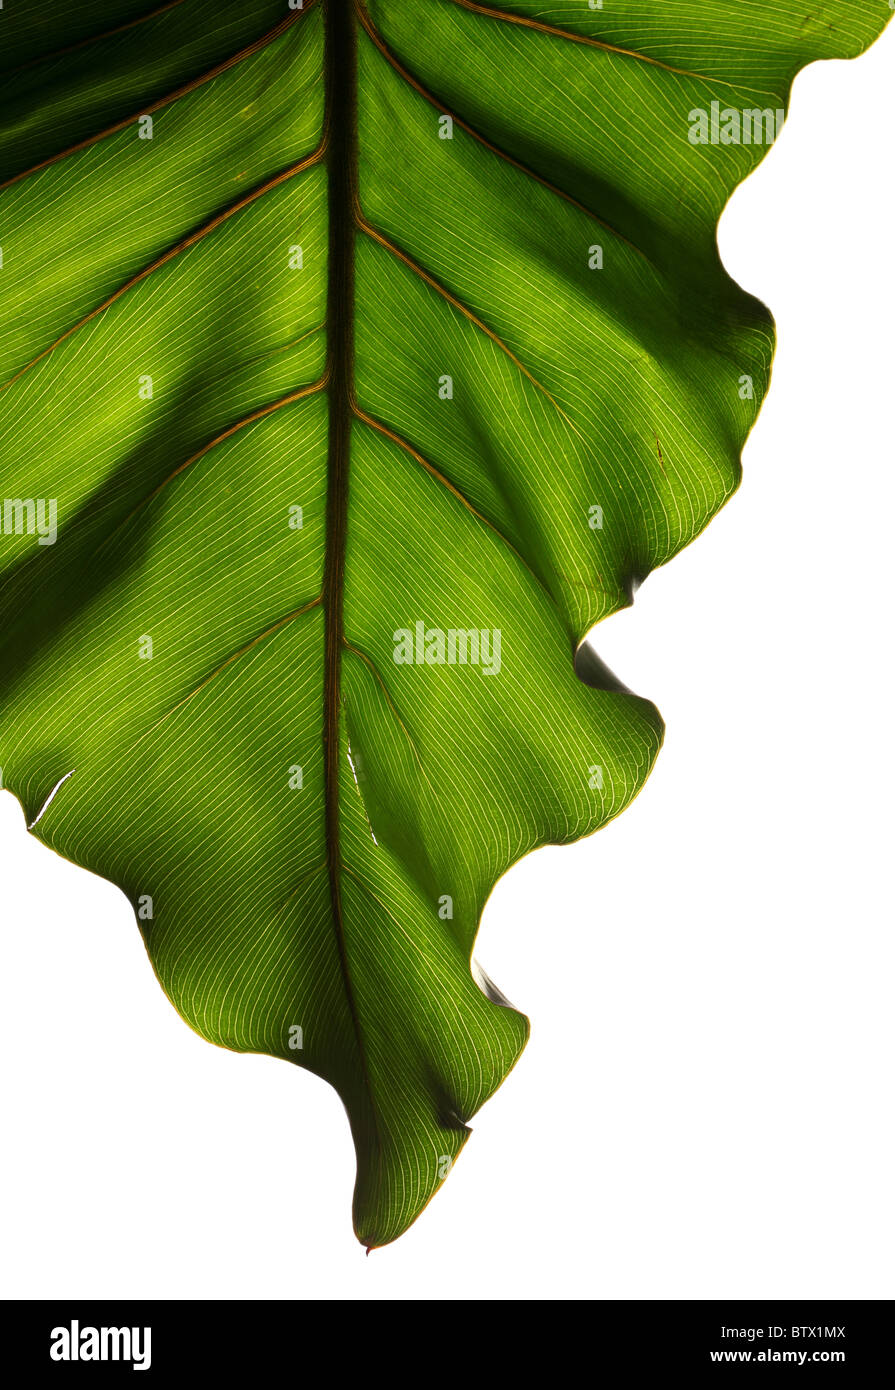 Green plant leaf with strong structure on a white background - Stock Image